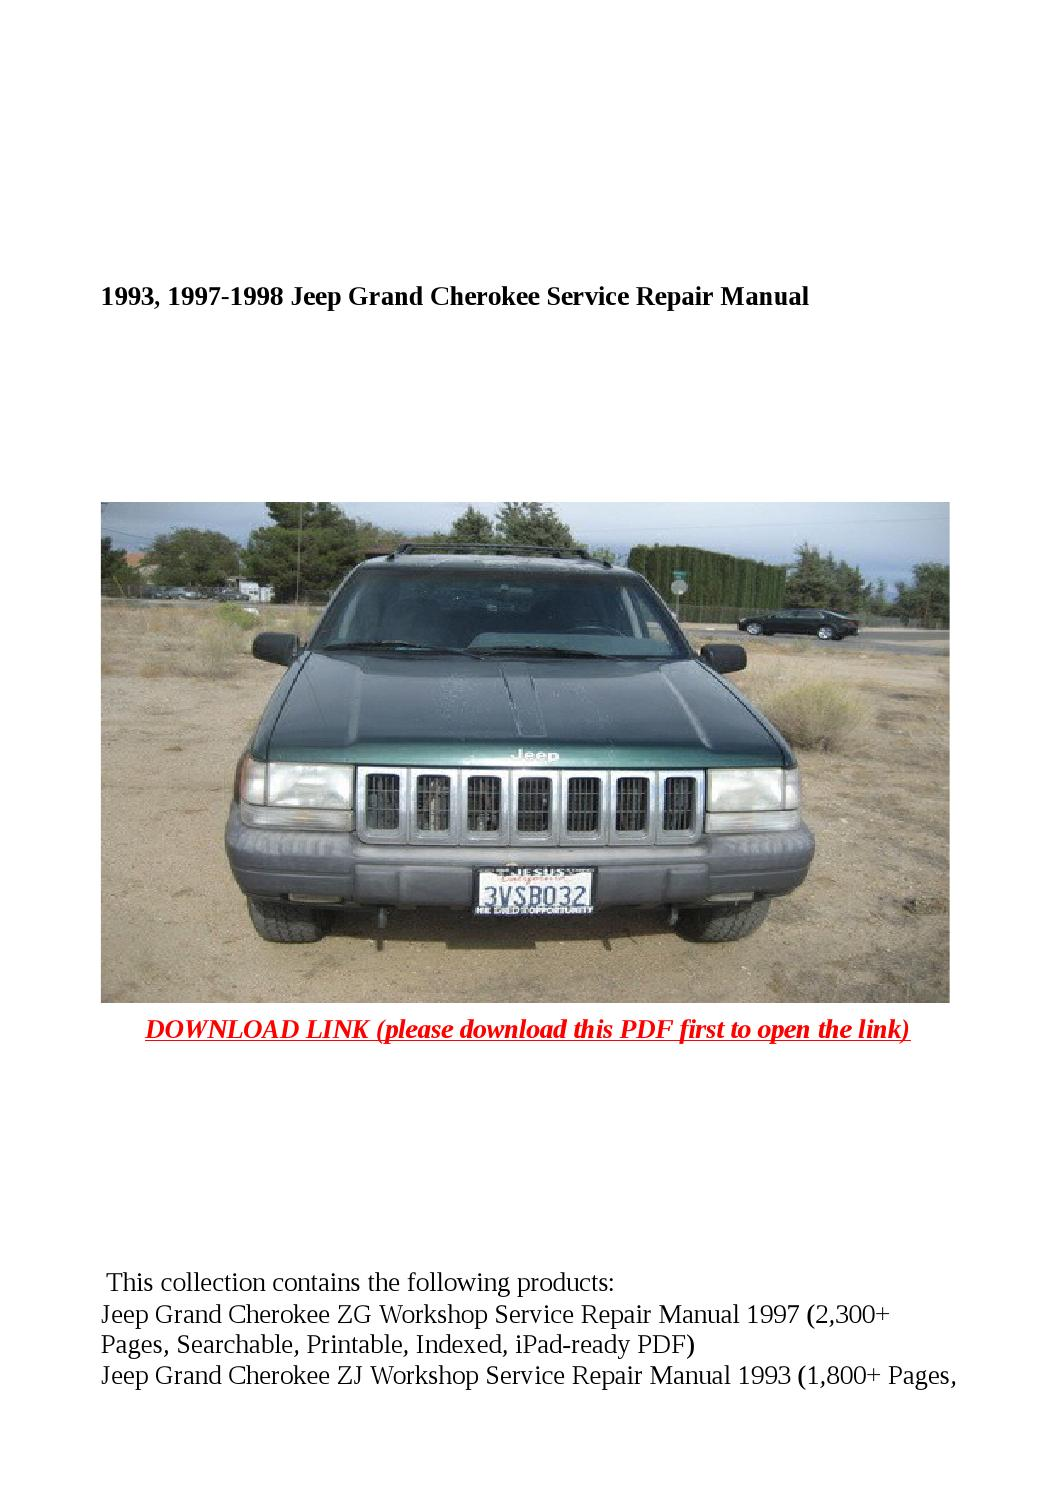 1993, 1997 1998 jeep grand cherokee service repair manual by buhbu - issuu